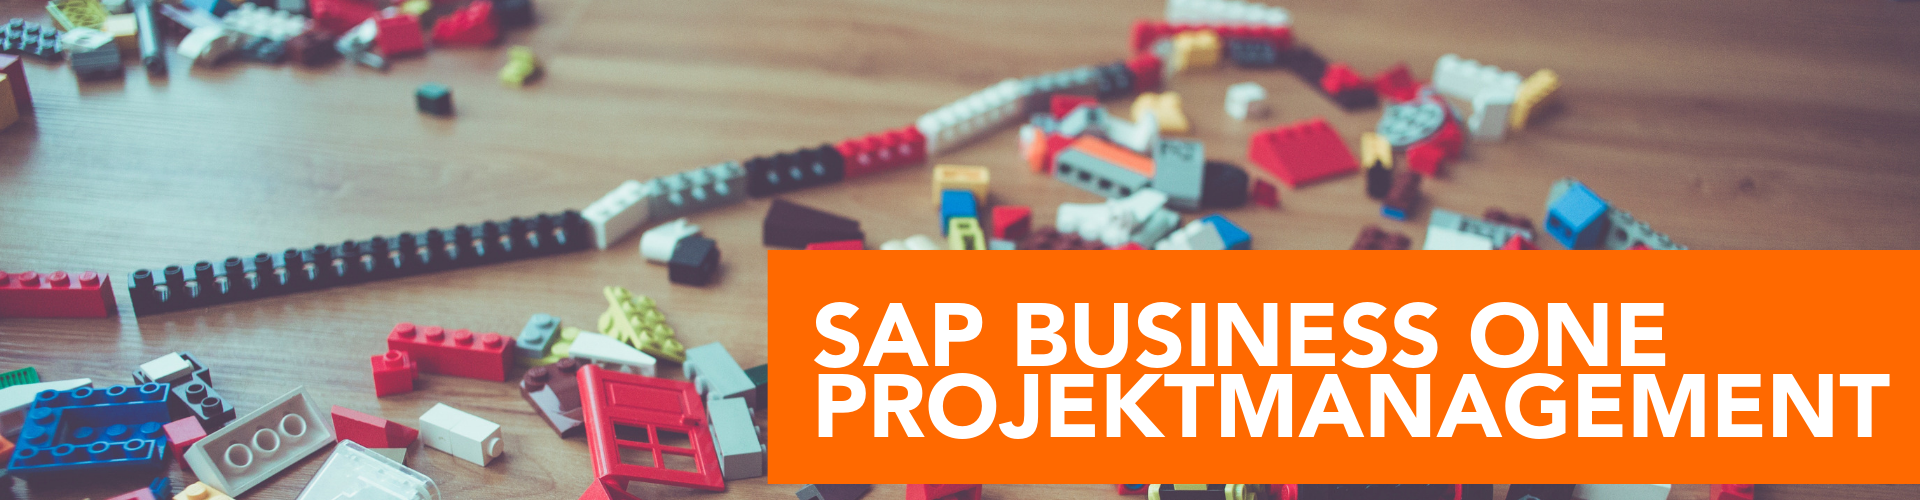 SAP Business One Projektmanagement